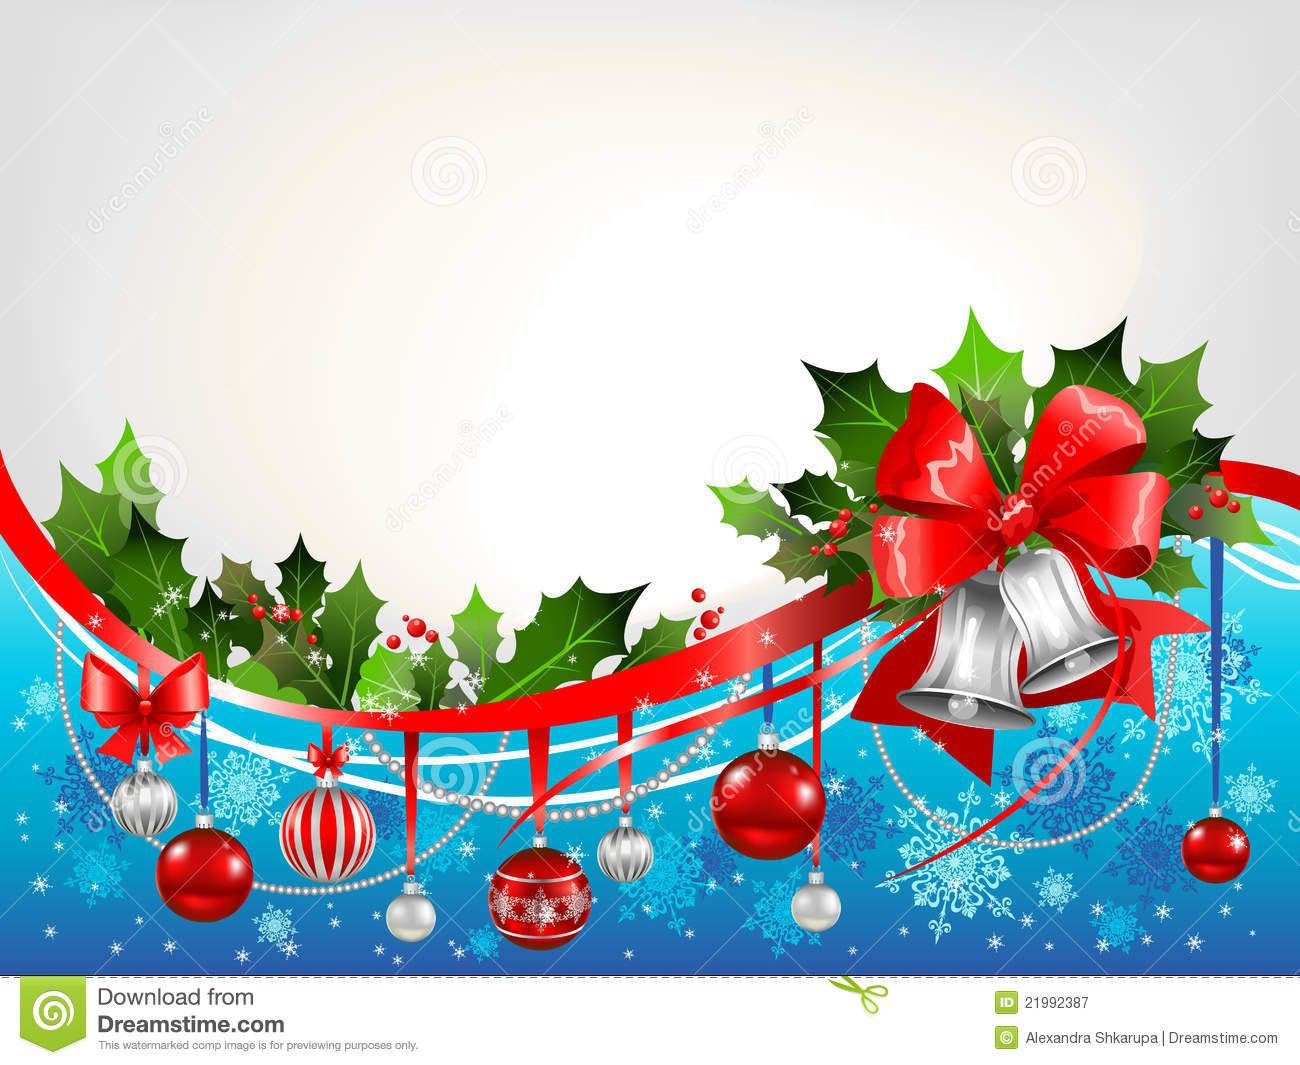 Animated Christmas Tree Wallpaper Christmas Festive Background With Silver Bells Royalty